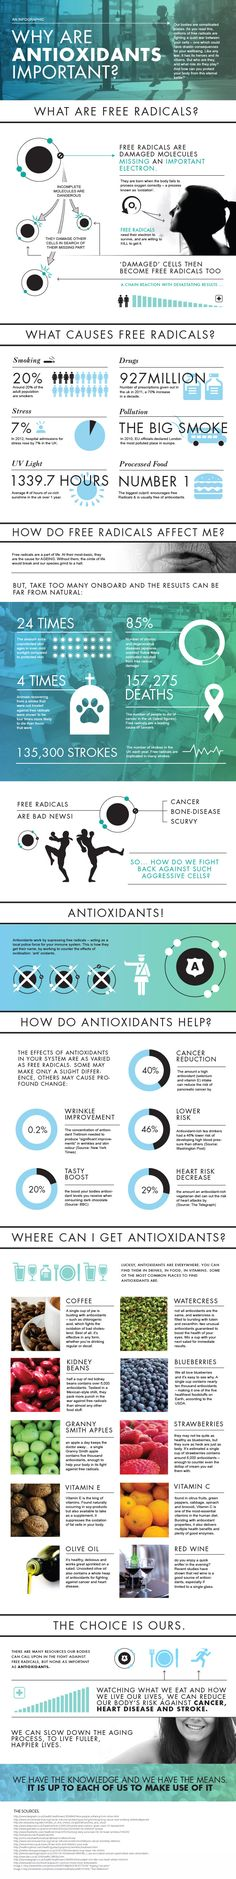 Why Are Antioxidants So Important?